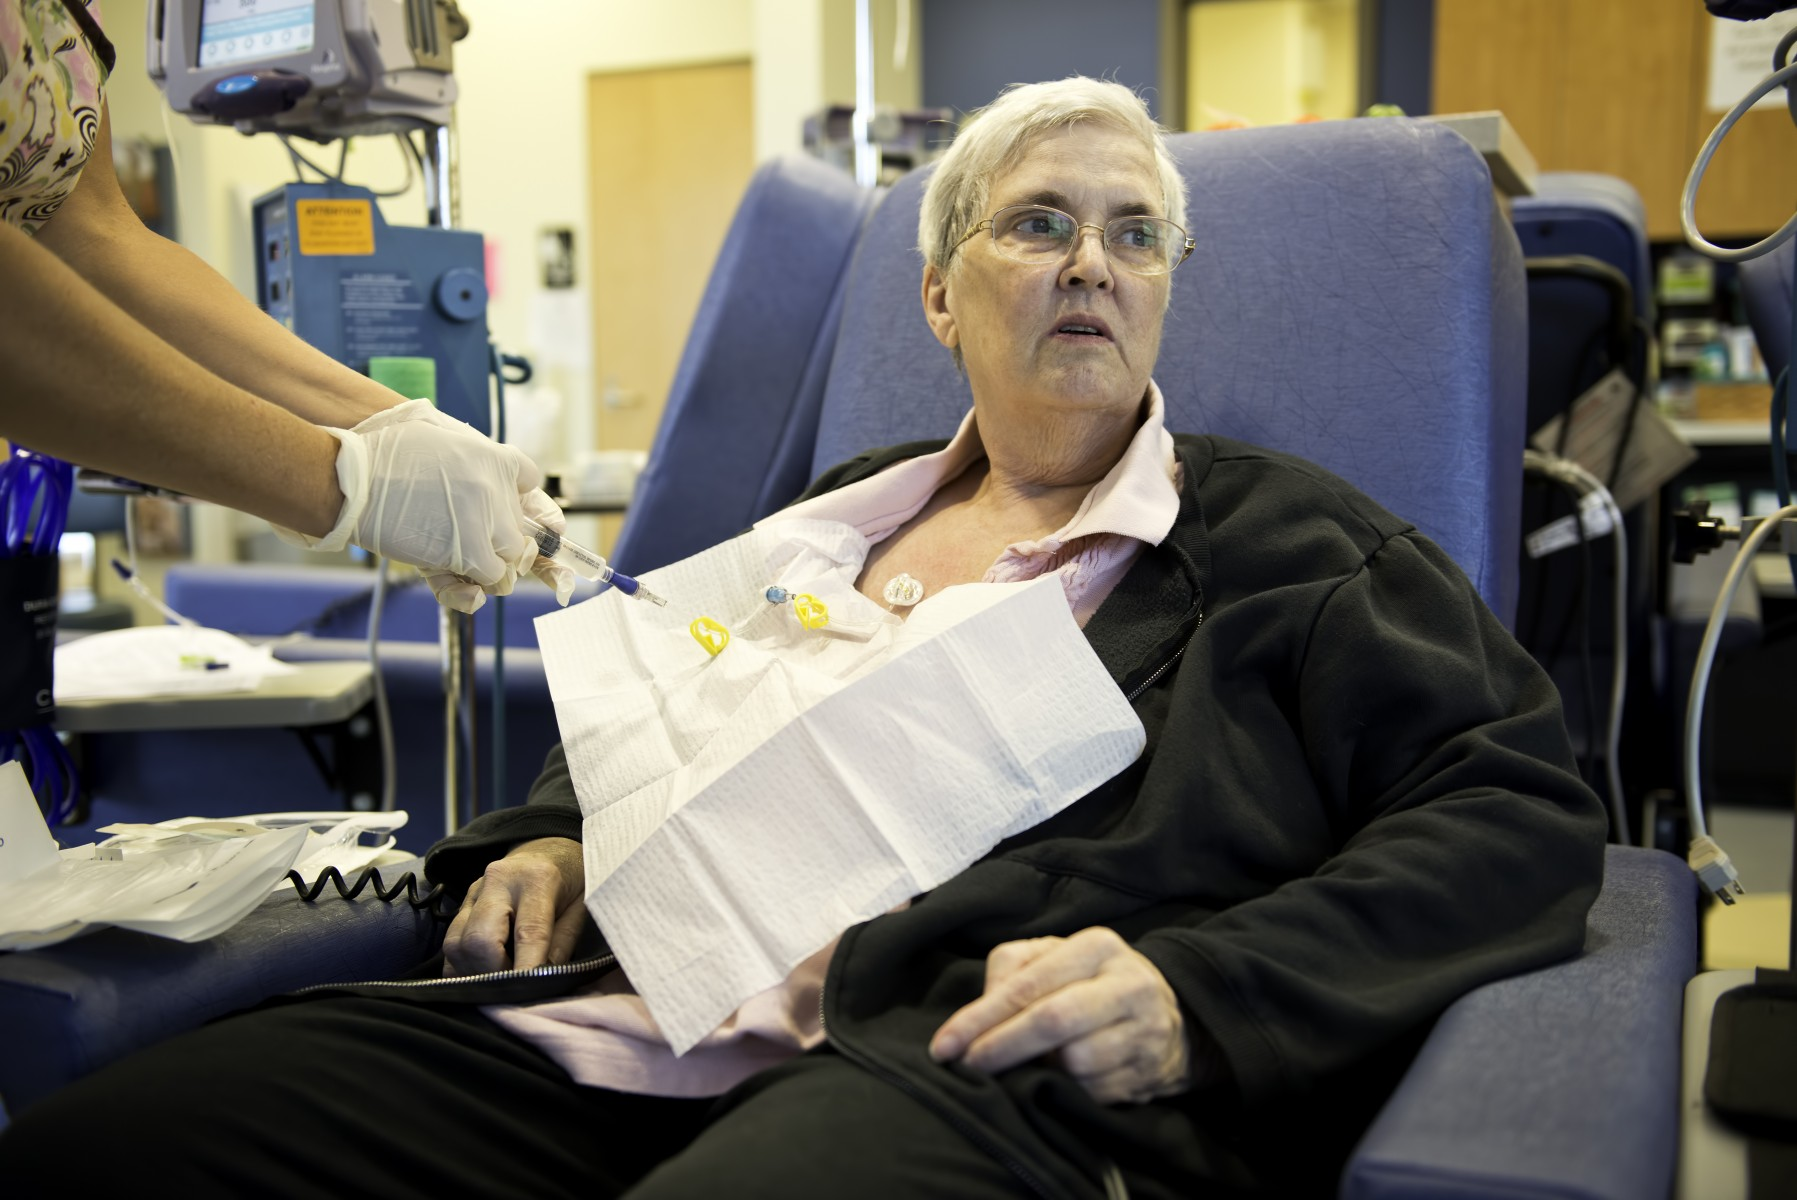 A cancer patient is prepped for a chemotherapy treatment.